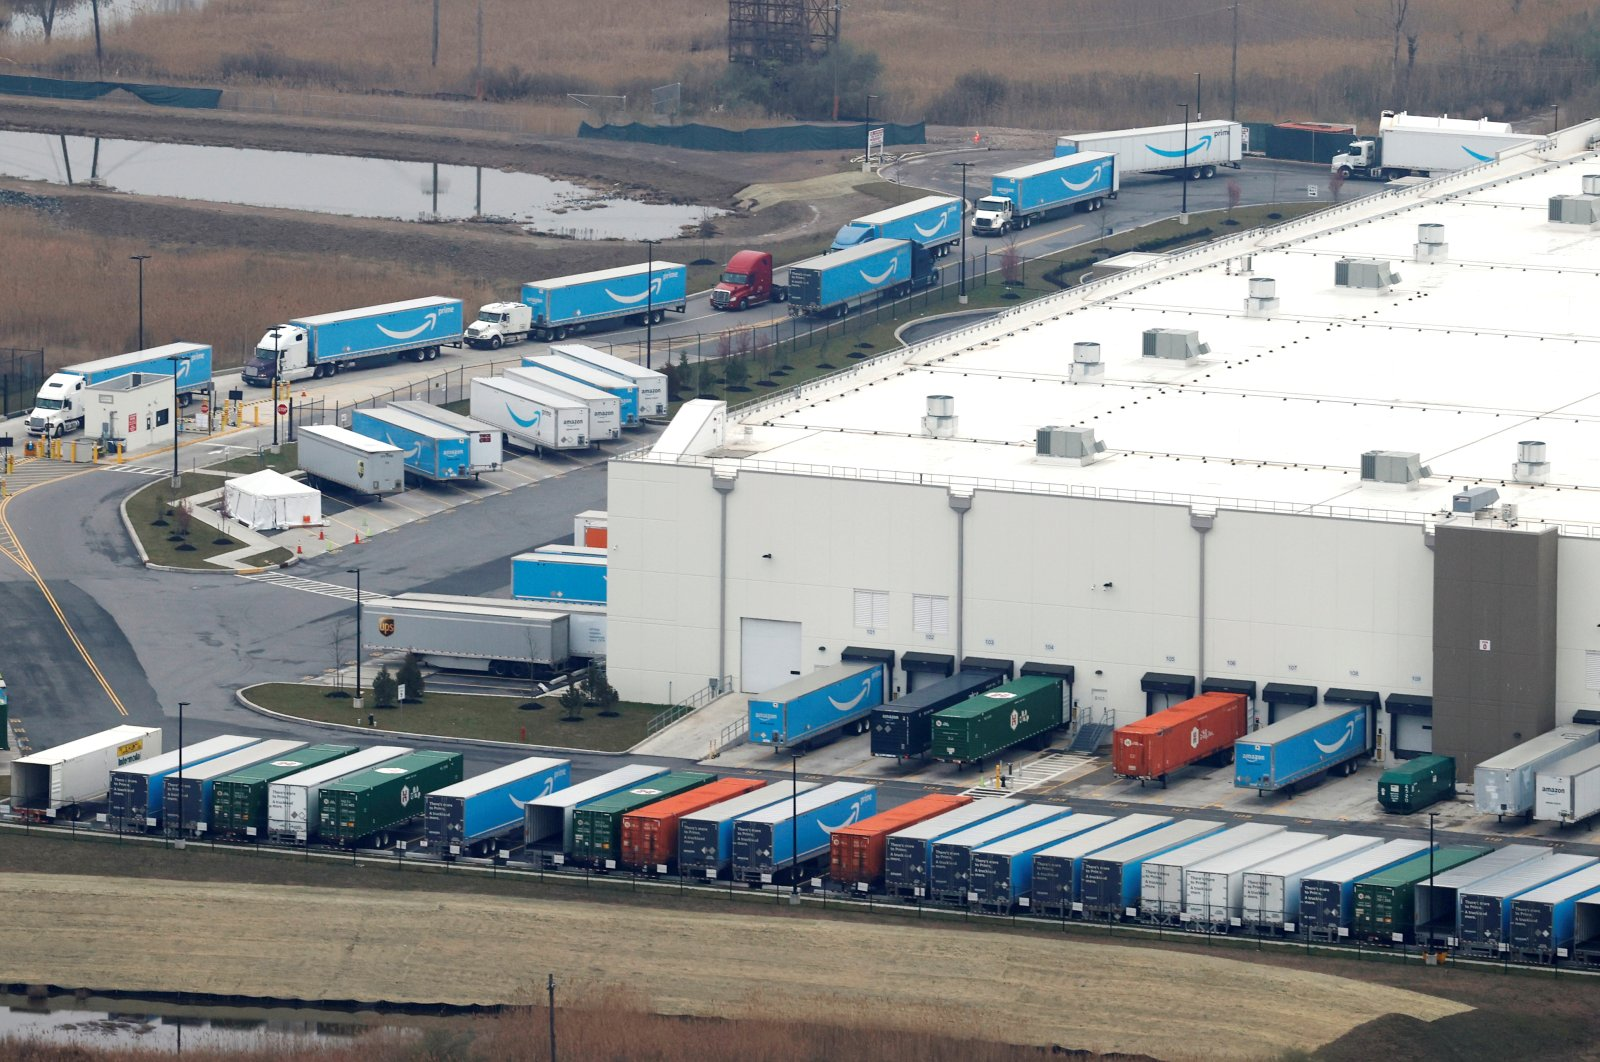 Amazon.com trucks are seen at an Amazon warehouse on Staten Island in New York City, New York, U.S., March 30, 2020. (Reuters Photo)